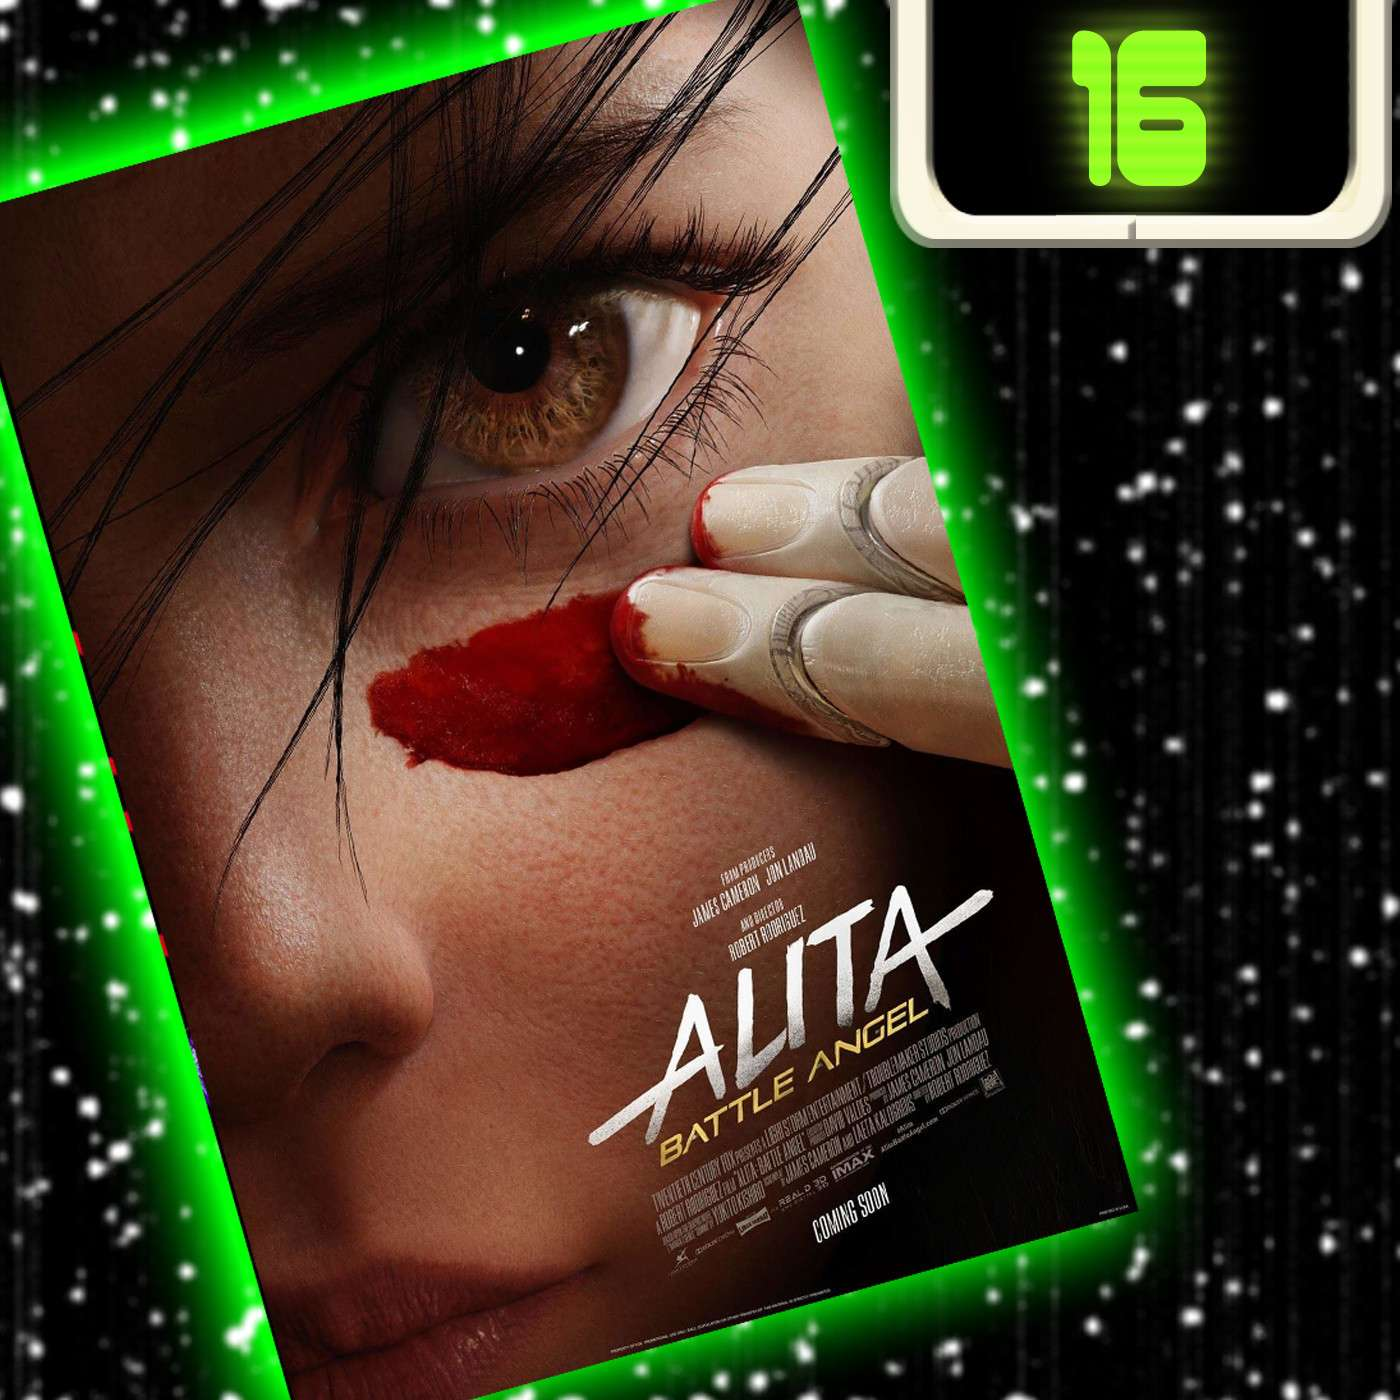 Test Subject #16: Alita: Battle Angel (2019)